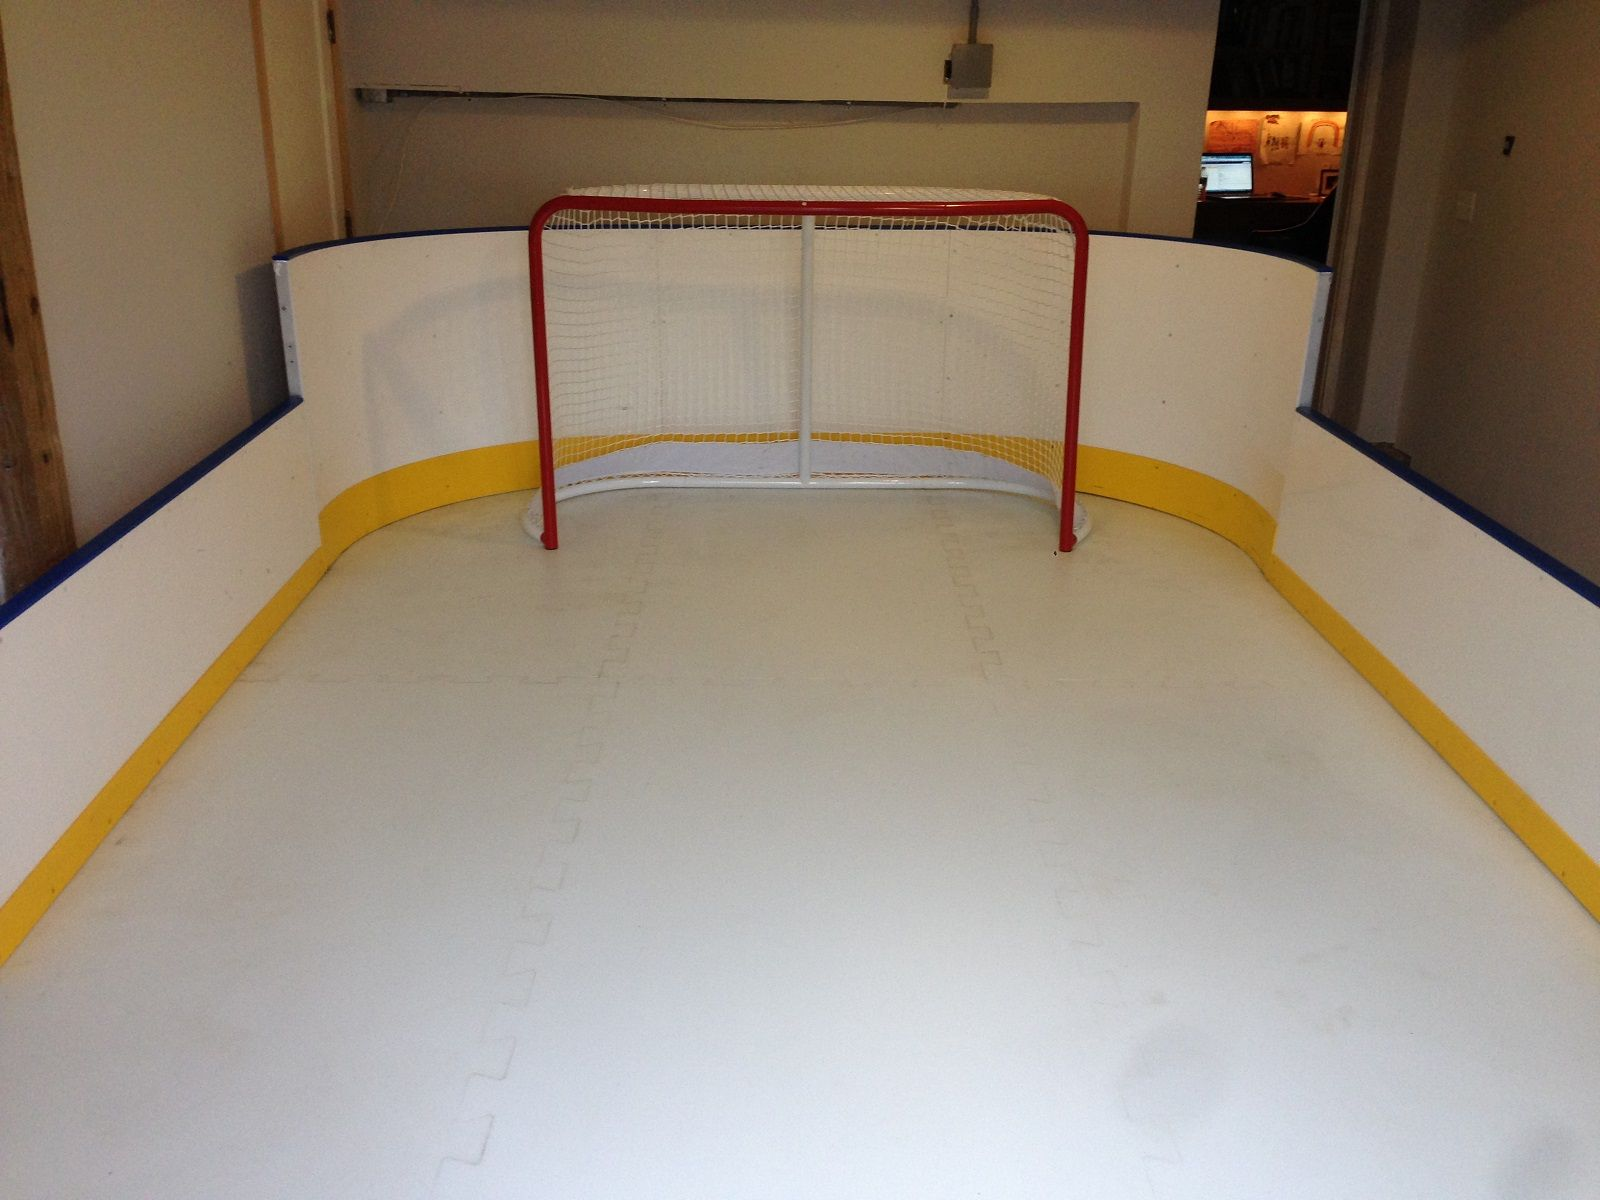 12 X 16 Hockey Rink Boards On 3 Sides Synthetic Ice D1 Backyard Rinks Backyard Rink Backyard Ice Rink Hockey Shot